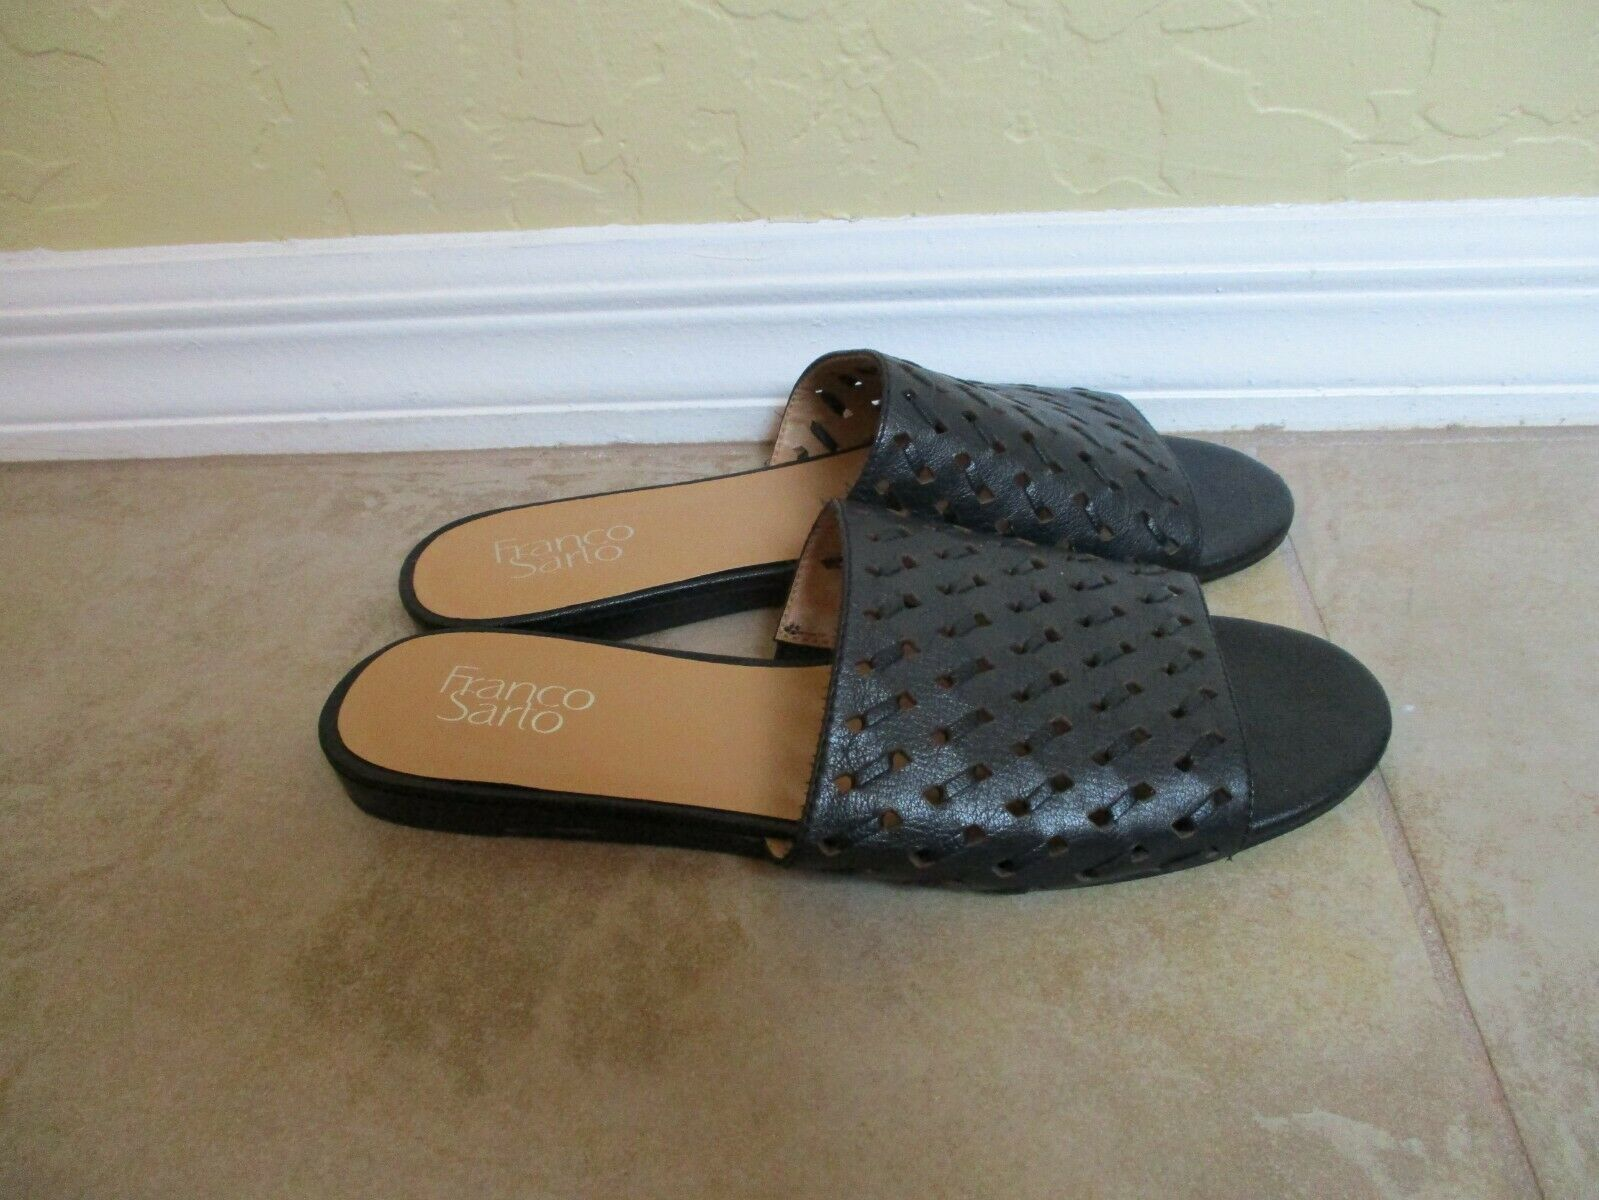 Franco Sarta Black Perforated Leather Mules For Women Size 9 Eur 39.5 image 5